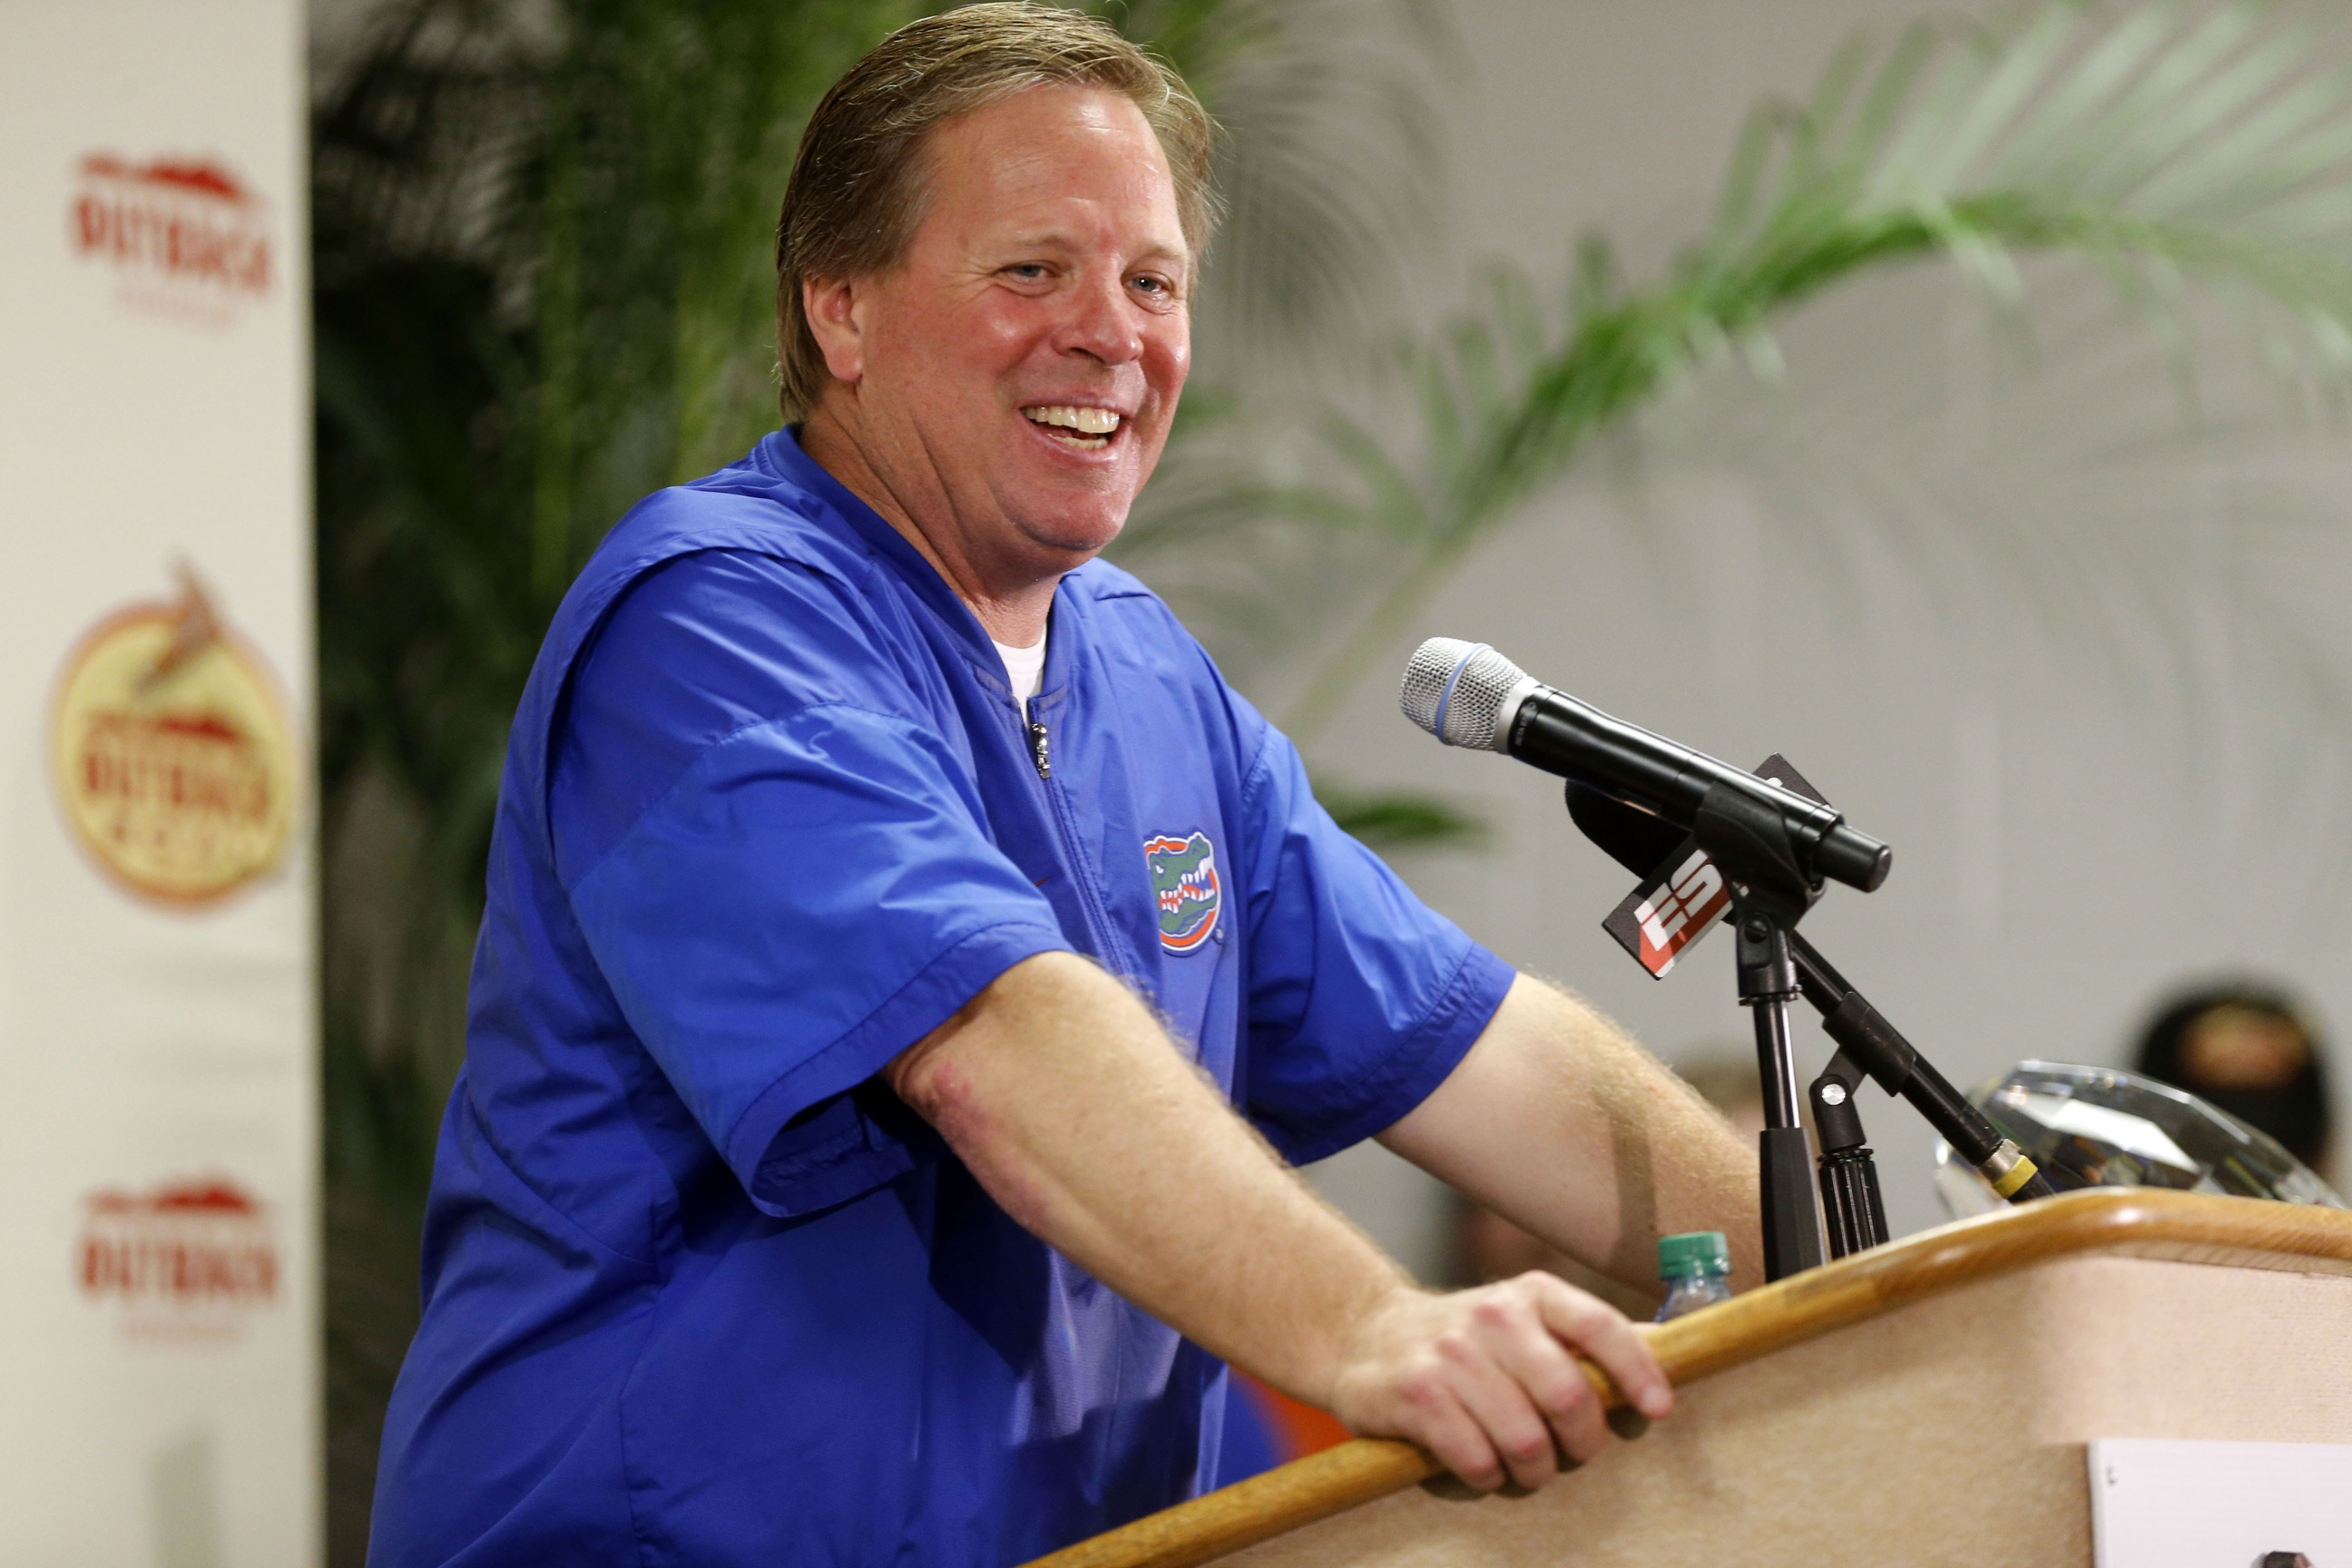 Jan 2, 2017; Tampa , FL, USA; Florida Gators head coach Jim McElwain speaks to the media while presentint the trophy during a press conference after defeating Iowa Hawkeyes 30-3 at Raymond James Stadium. Mandatory Credit: Kim Klement-USA TODAY Sports